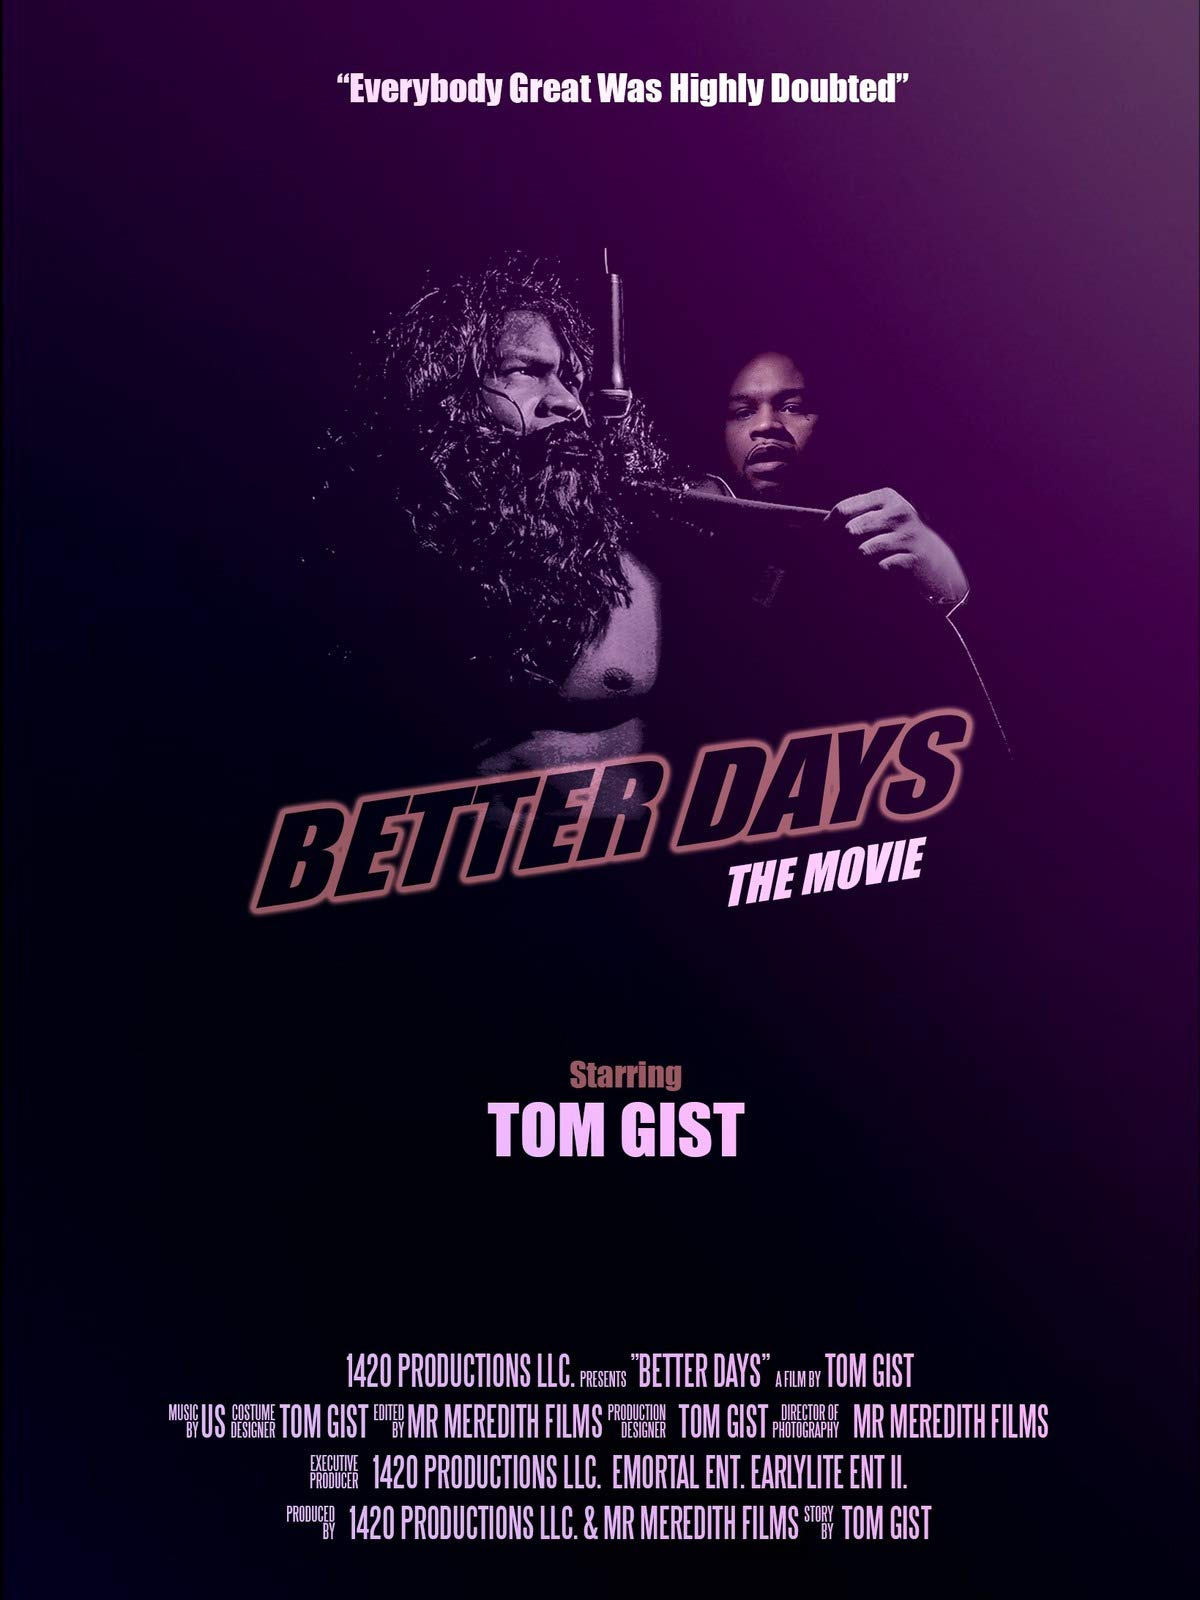 Better Days The Movie